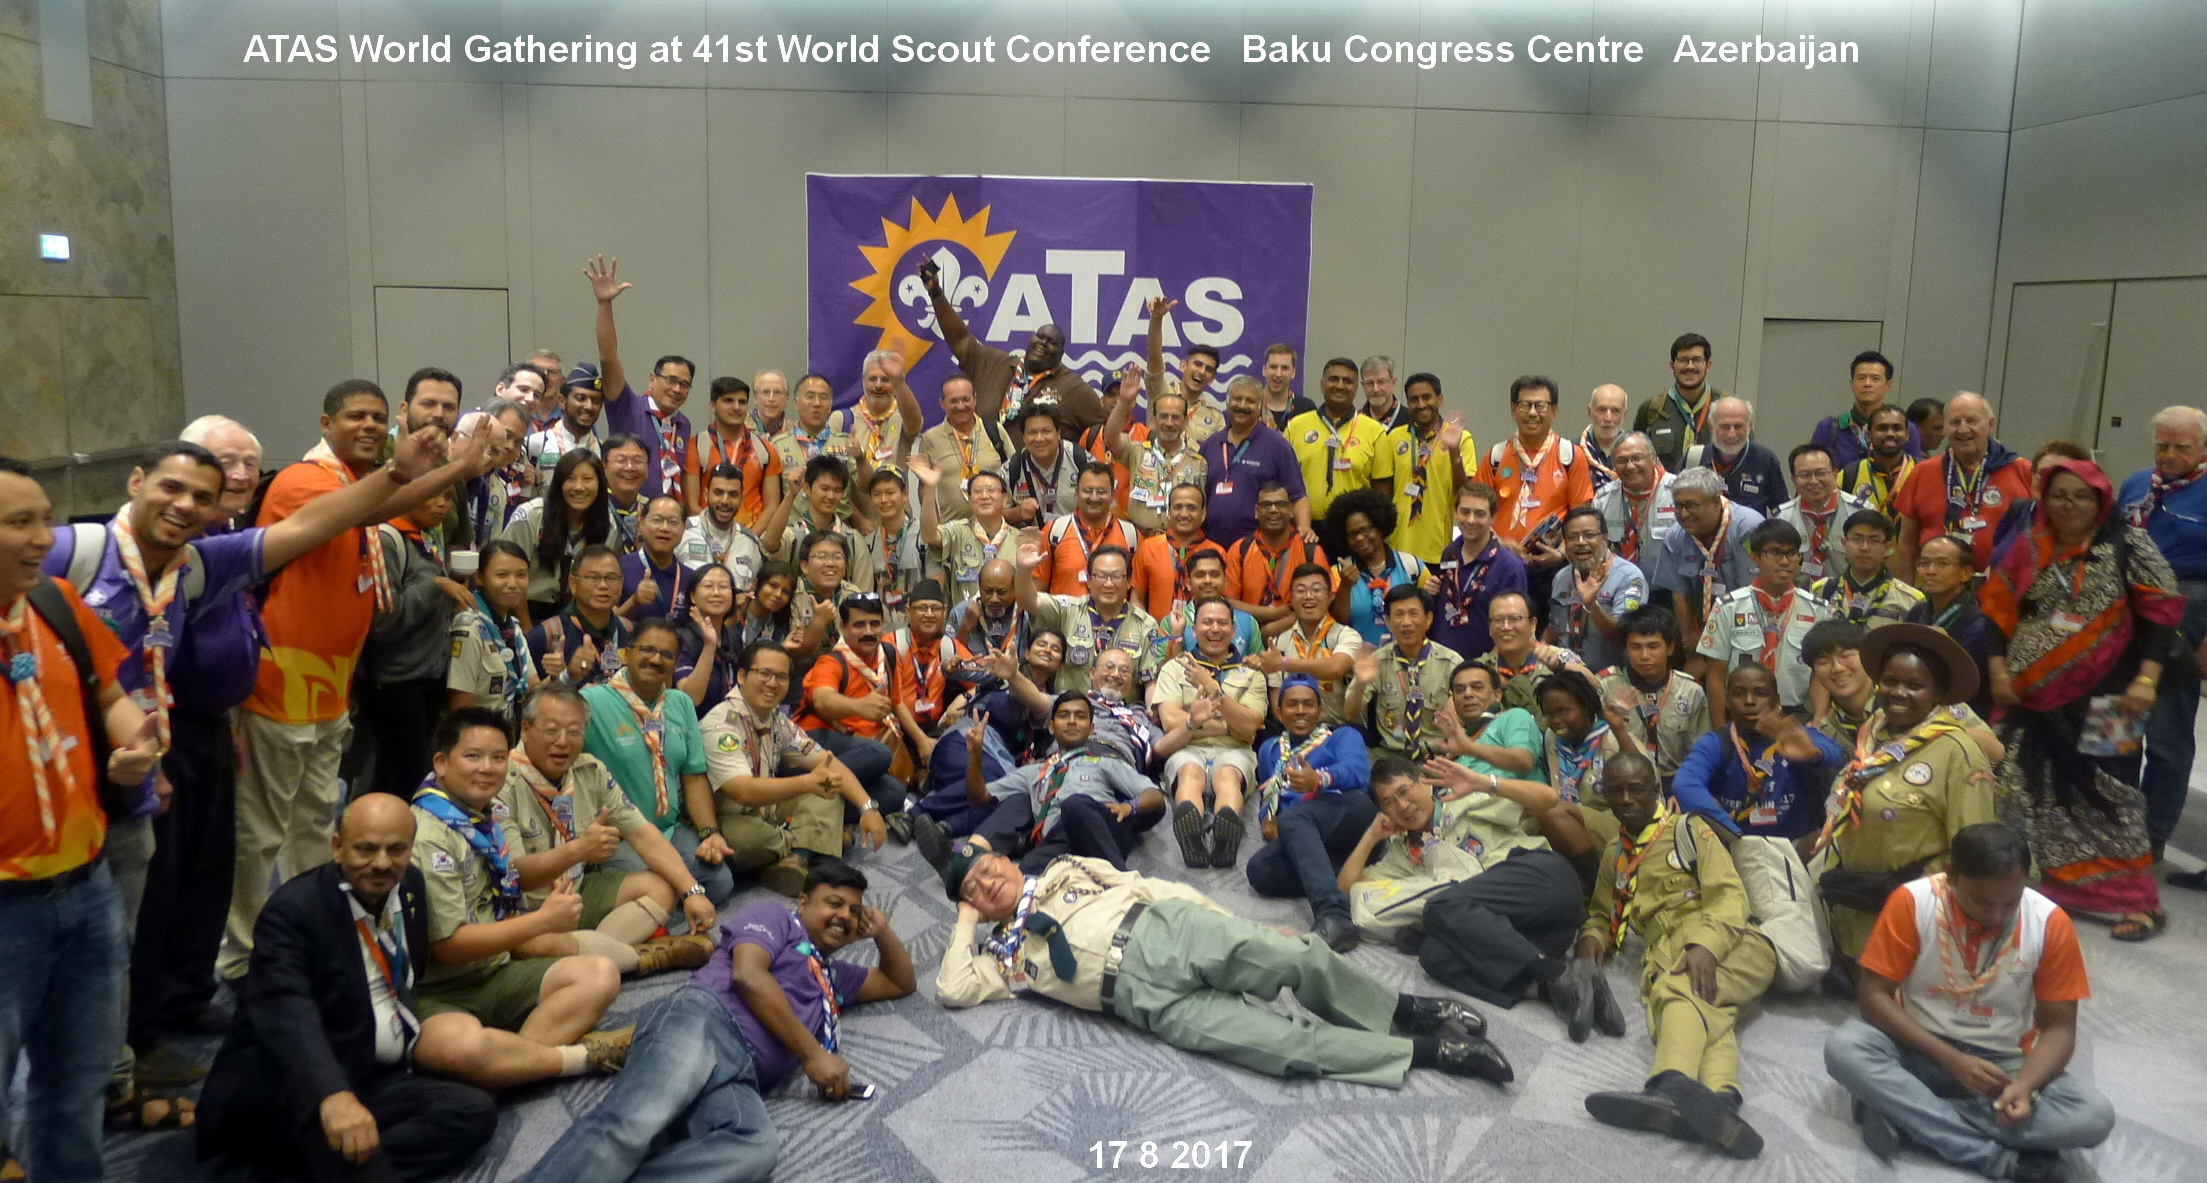 ATAS Scout World